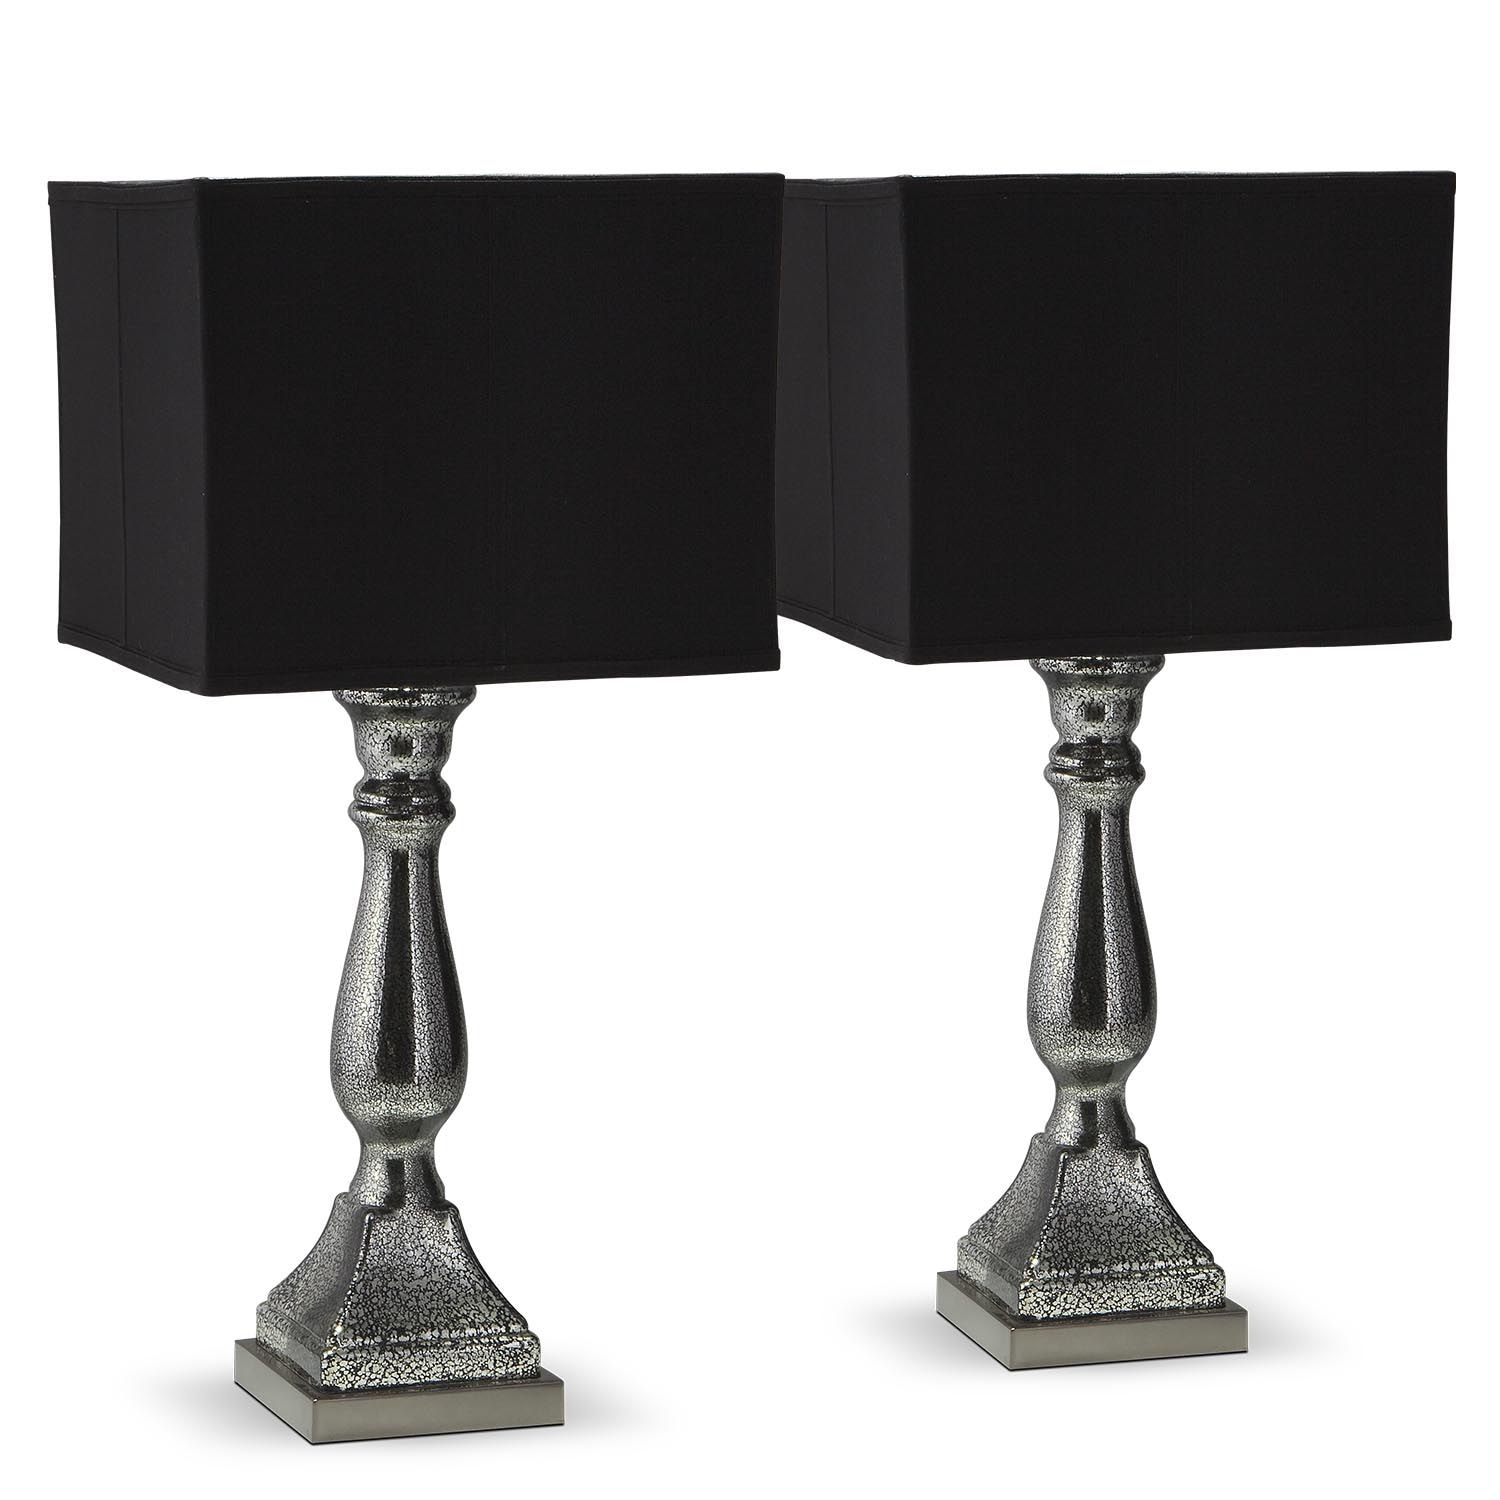 Home Accessories - Silver Black Mercury 2-Pack Table Lamps